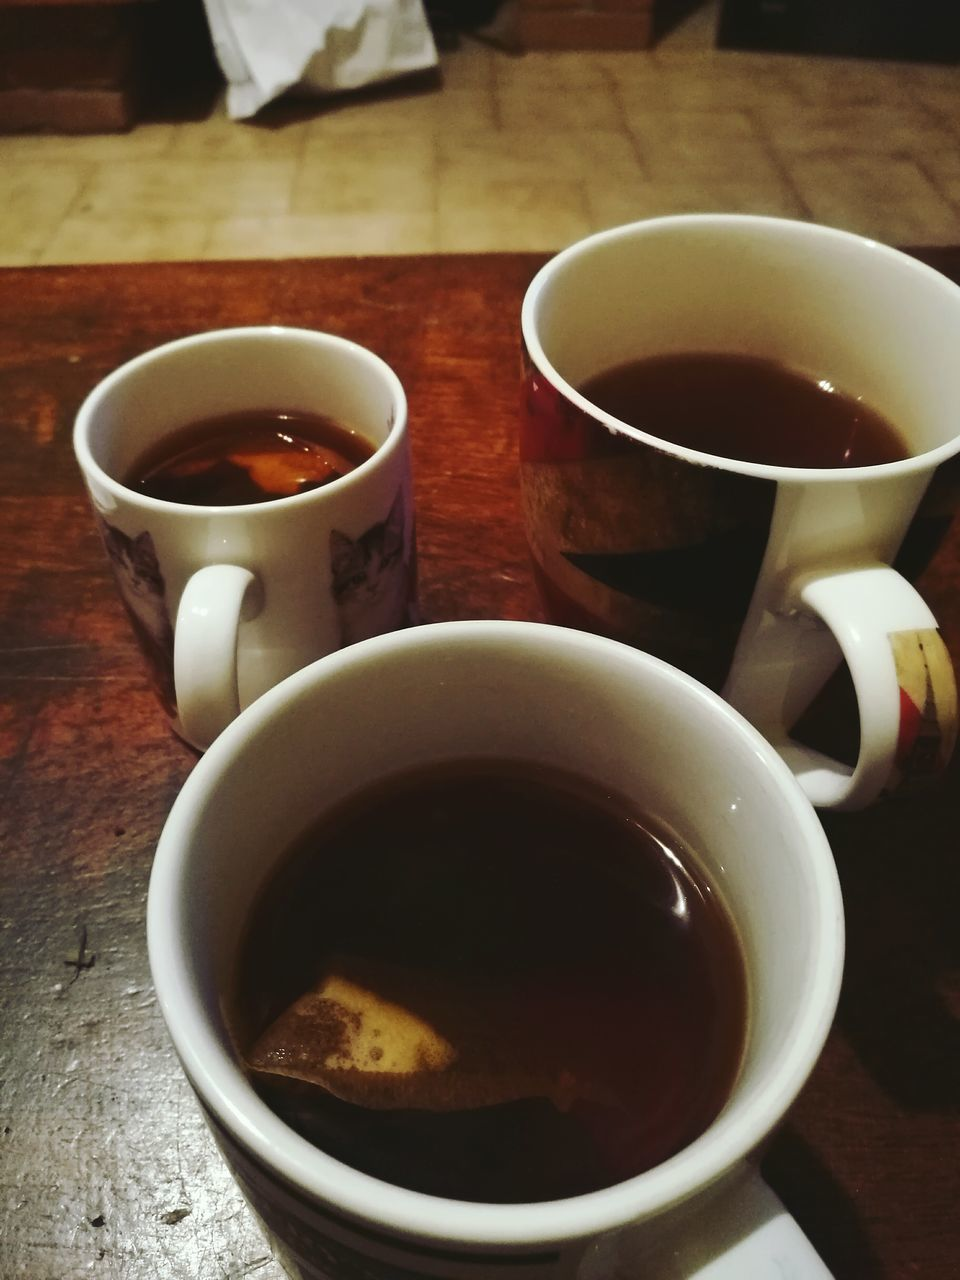 drink, coffee cup, food and drink, refreshment, table, coffee - drink, cup, indoors, saucer, close-up, freshness, tea - hot drink, no people, day